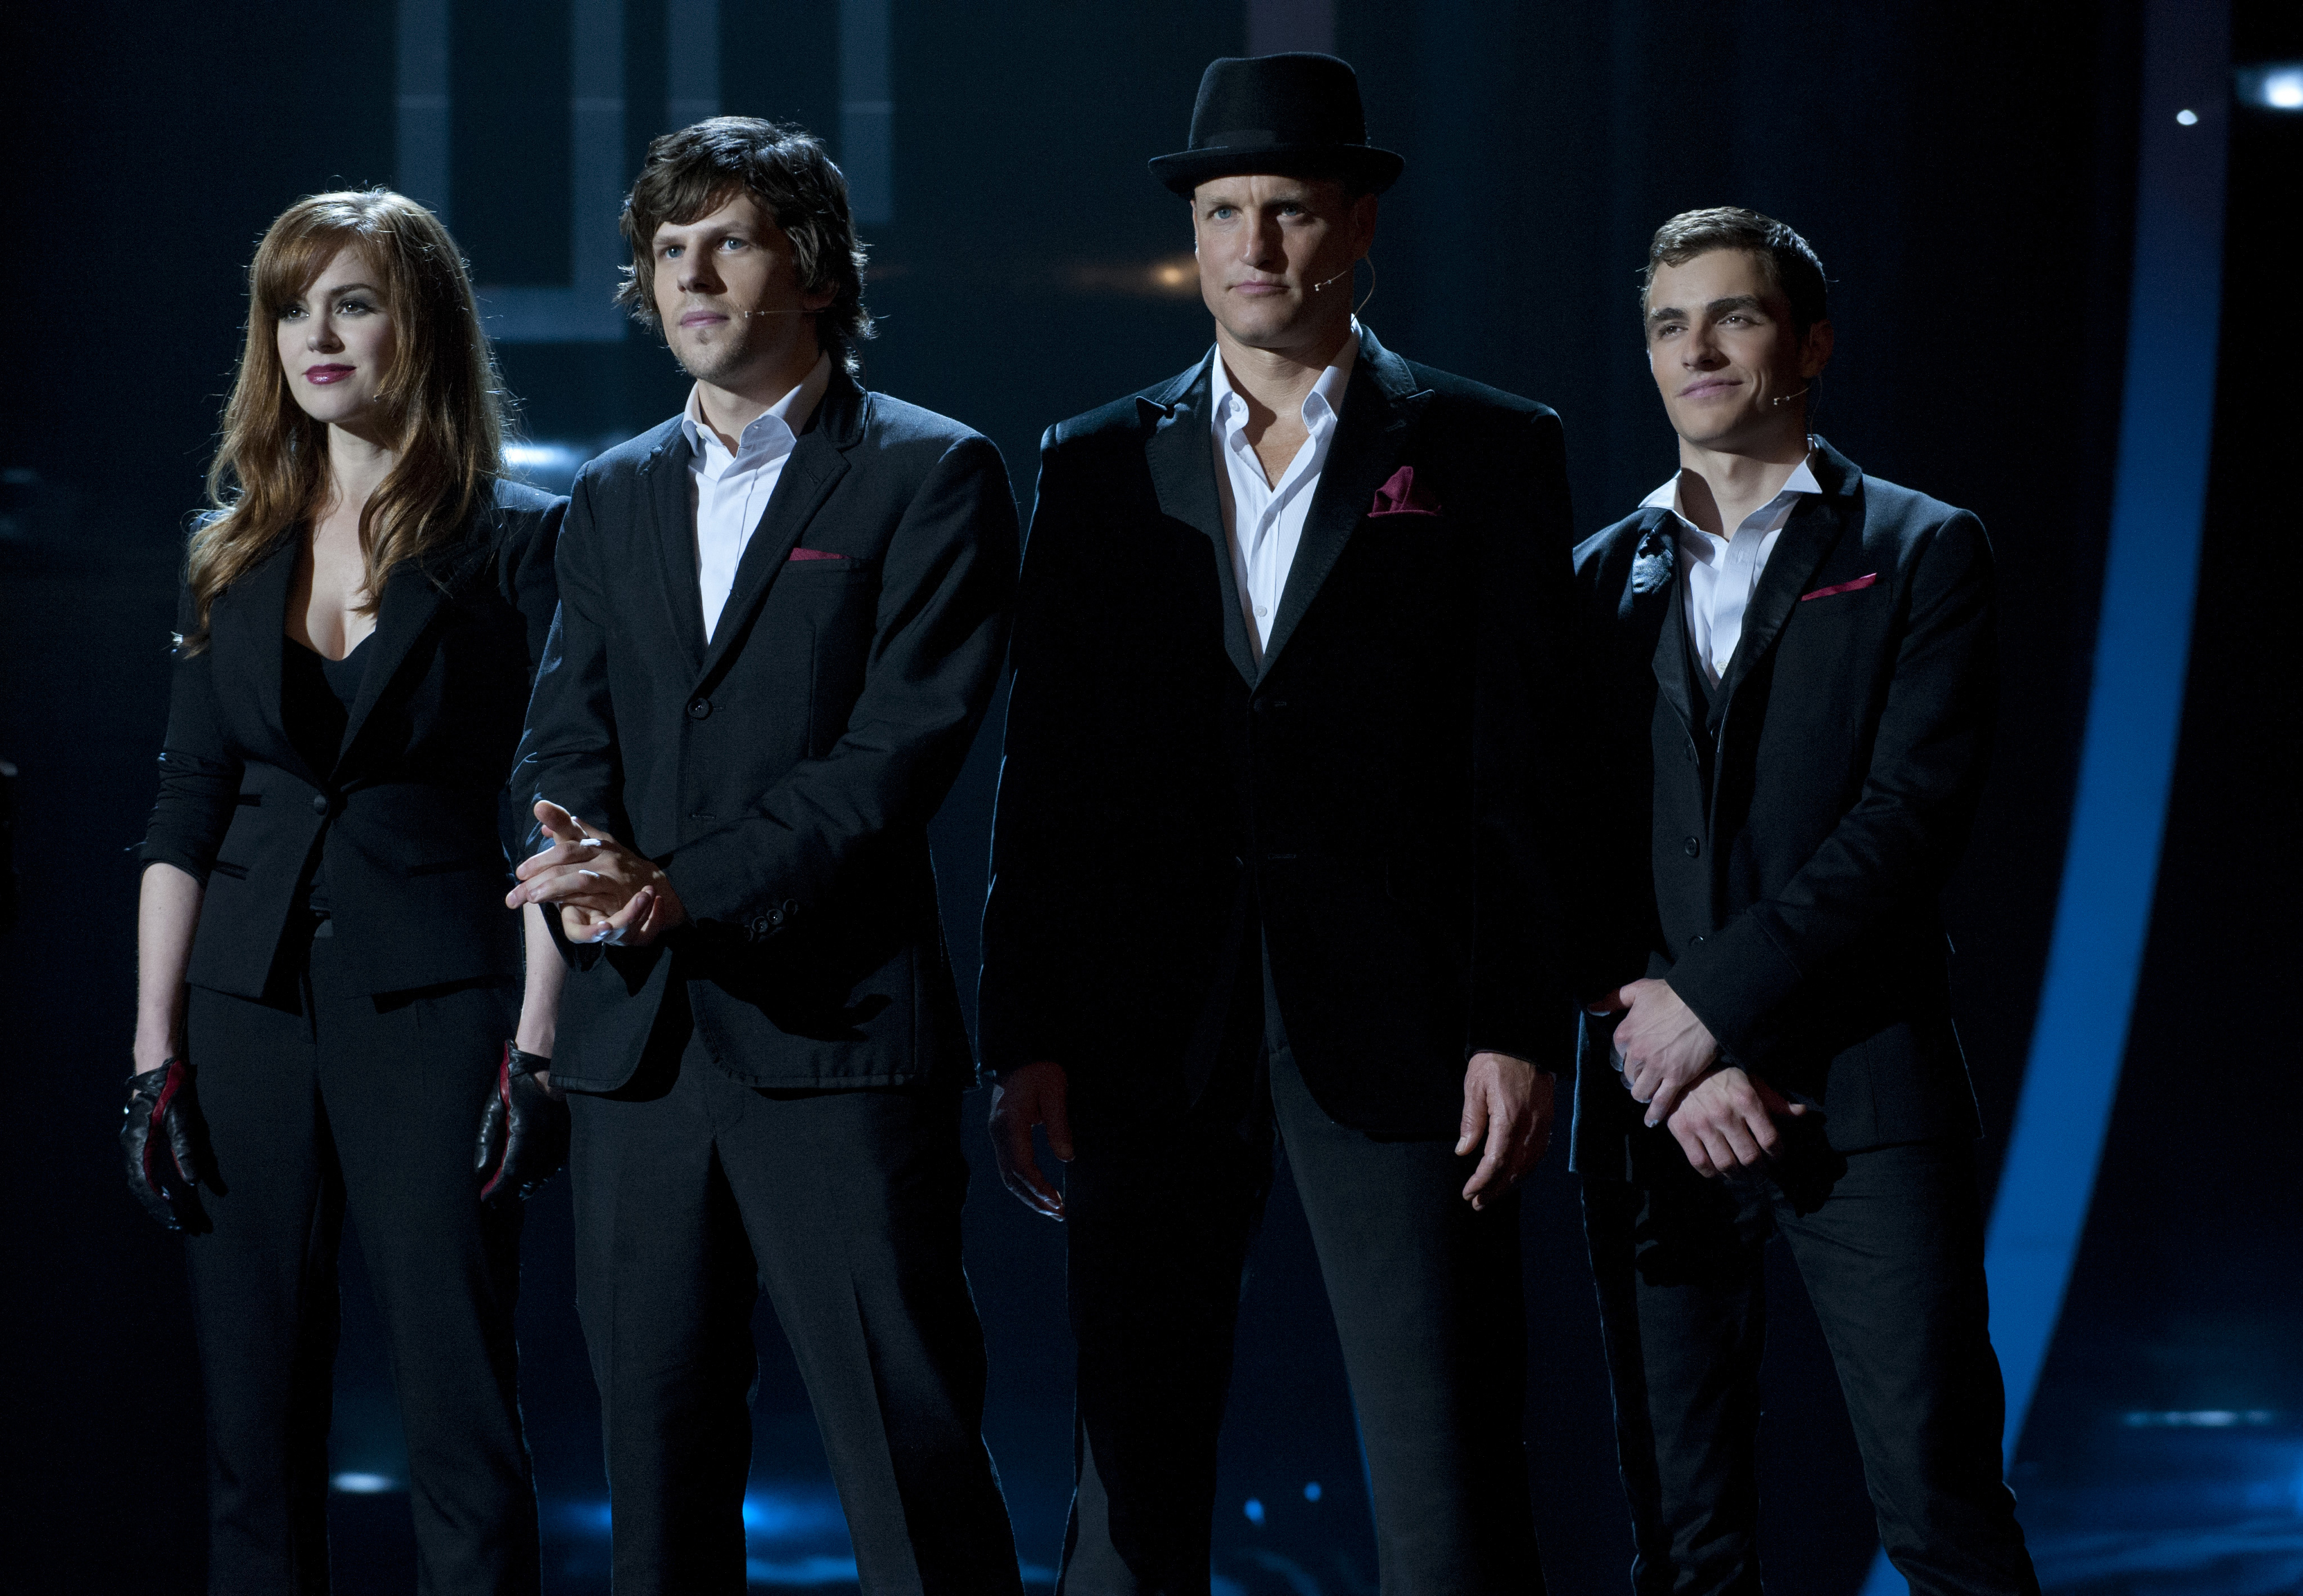 Film Review: Now You See Me